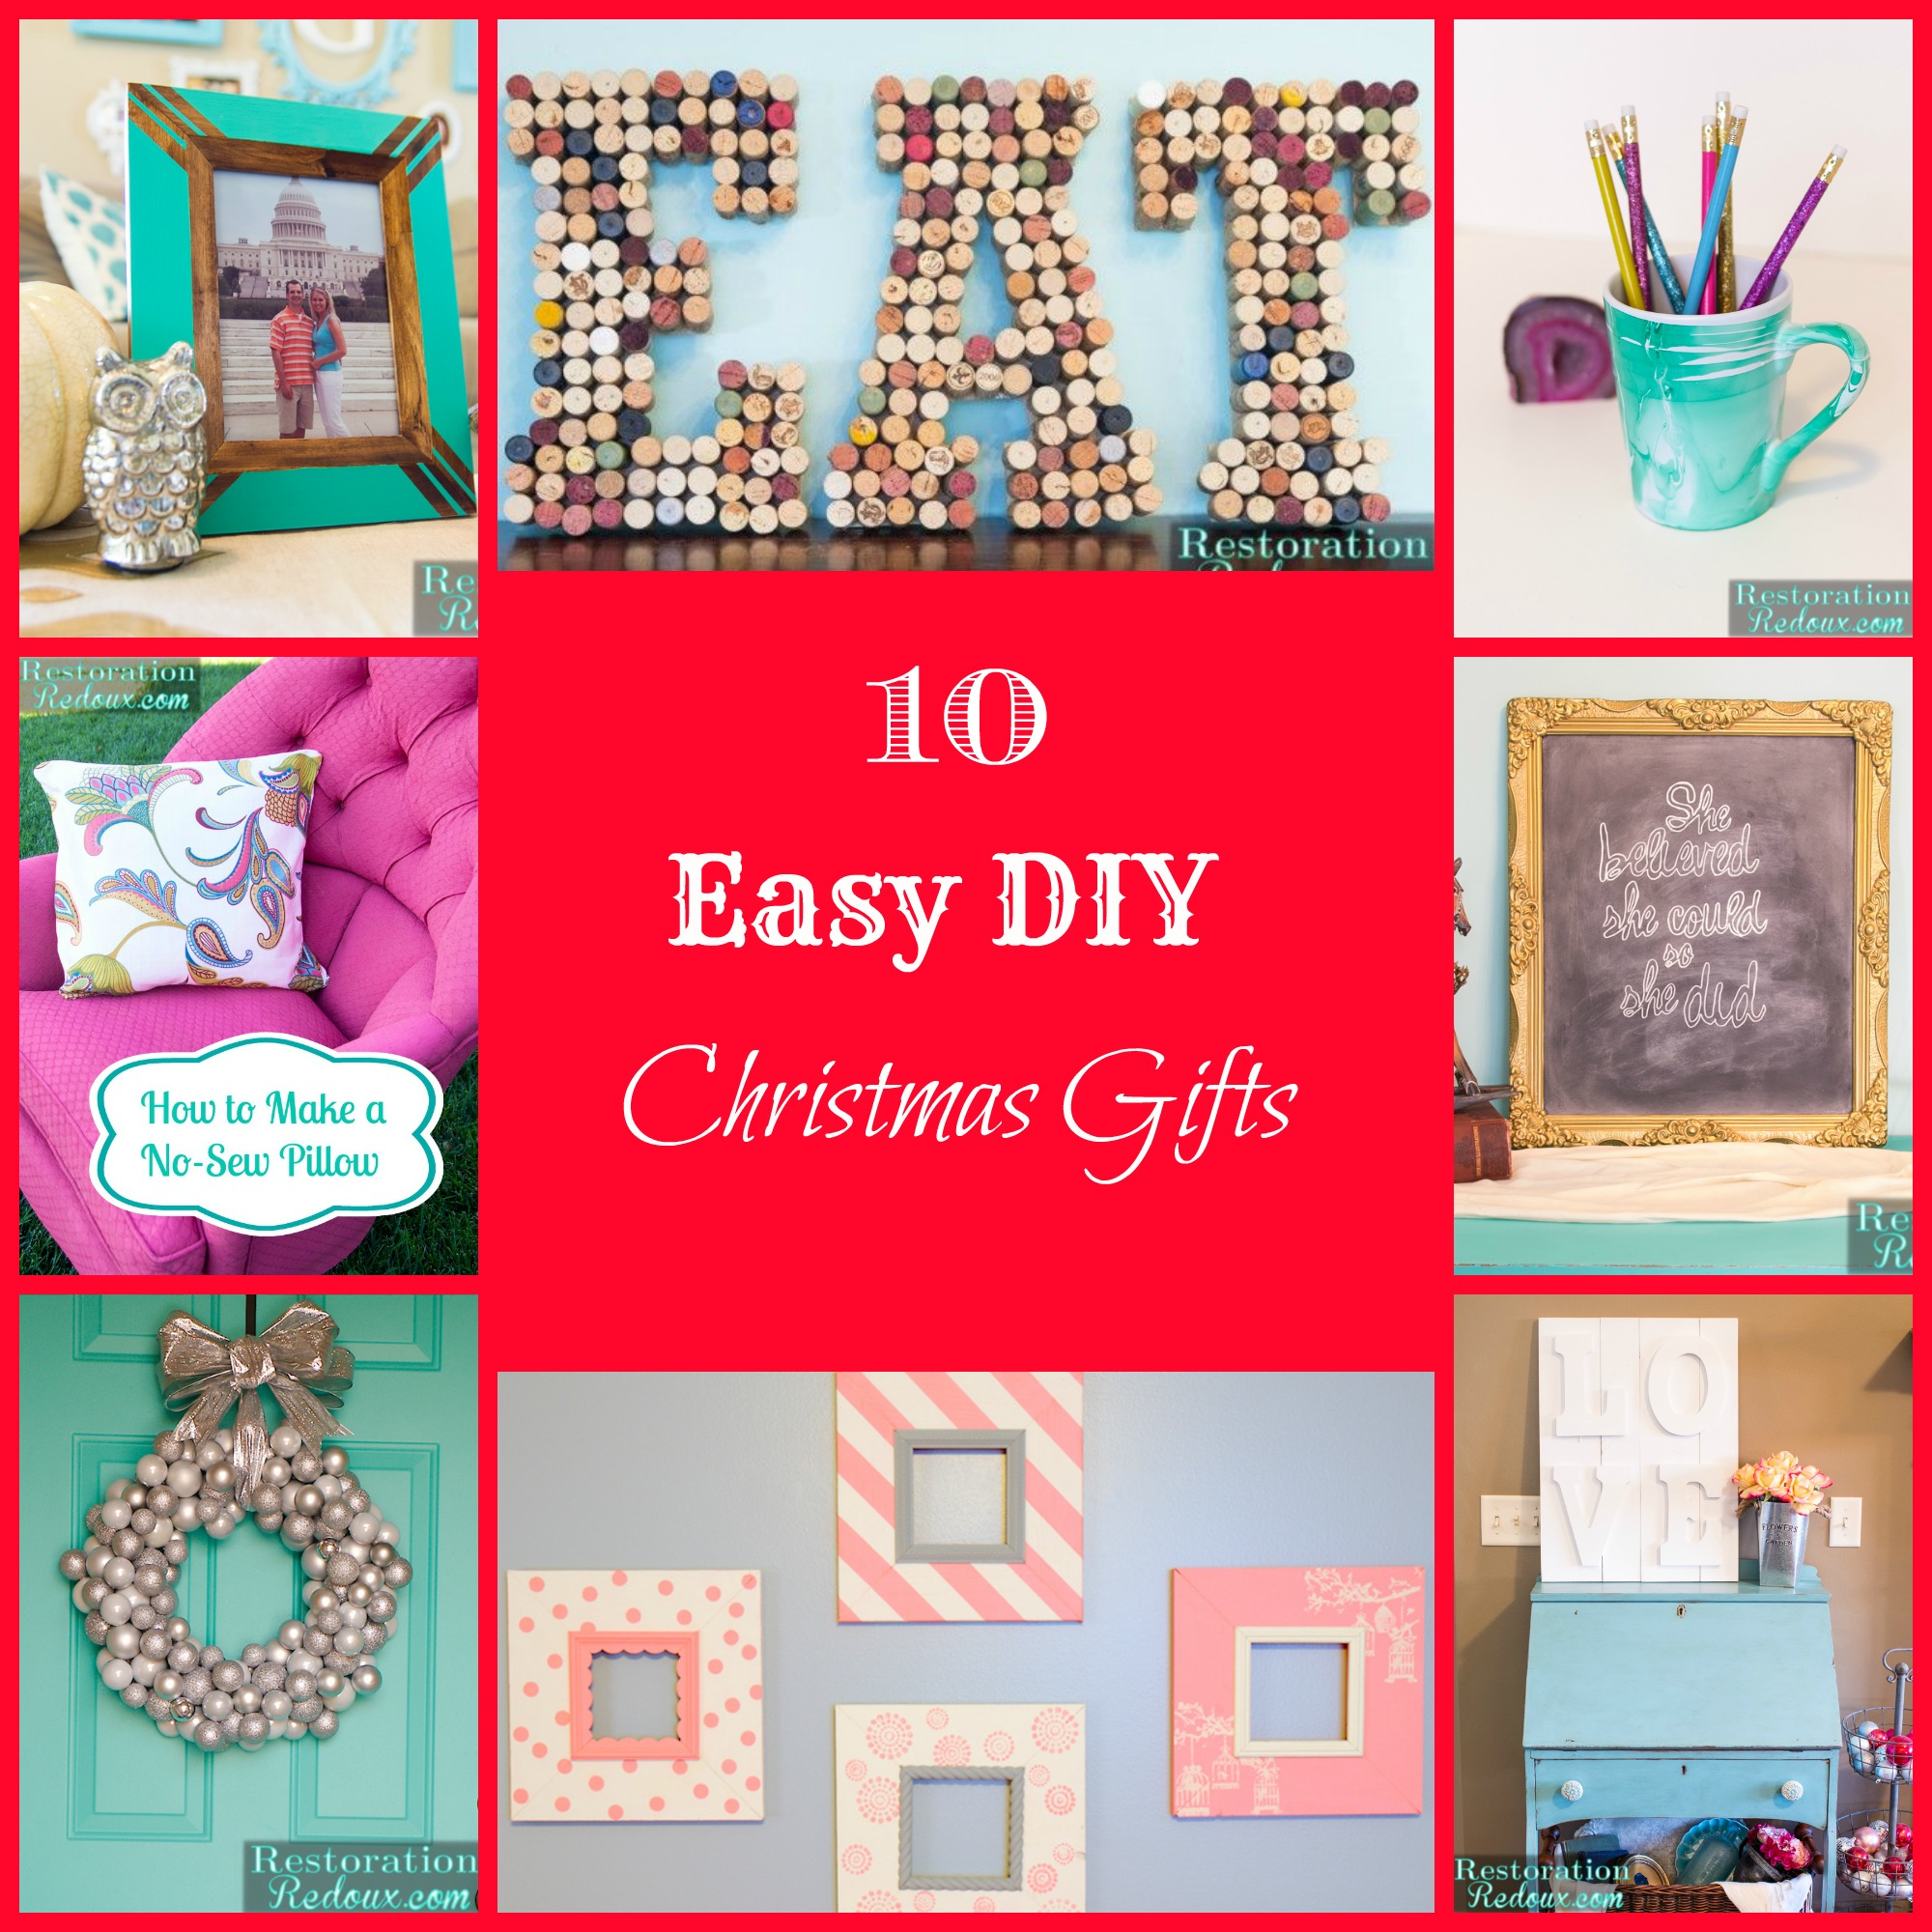 Cheap 33 Last Minute Quick Cheap Diy Christmas Gifts: 10 Easy DIY Christmas Gifts